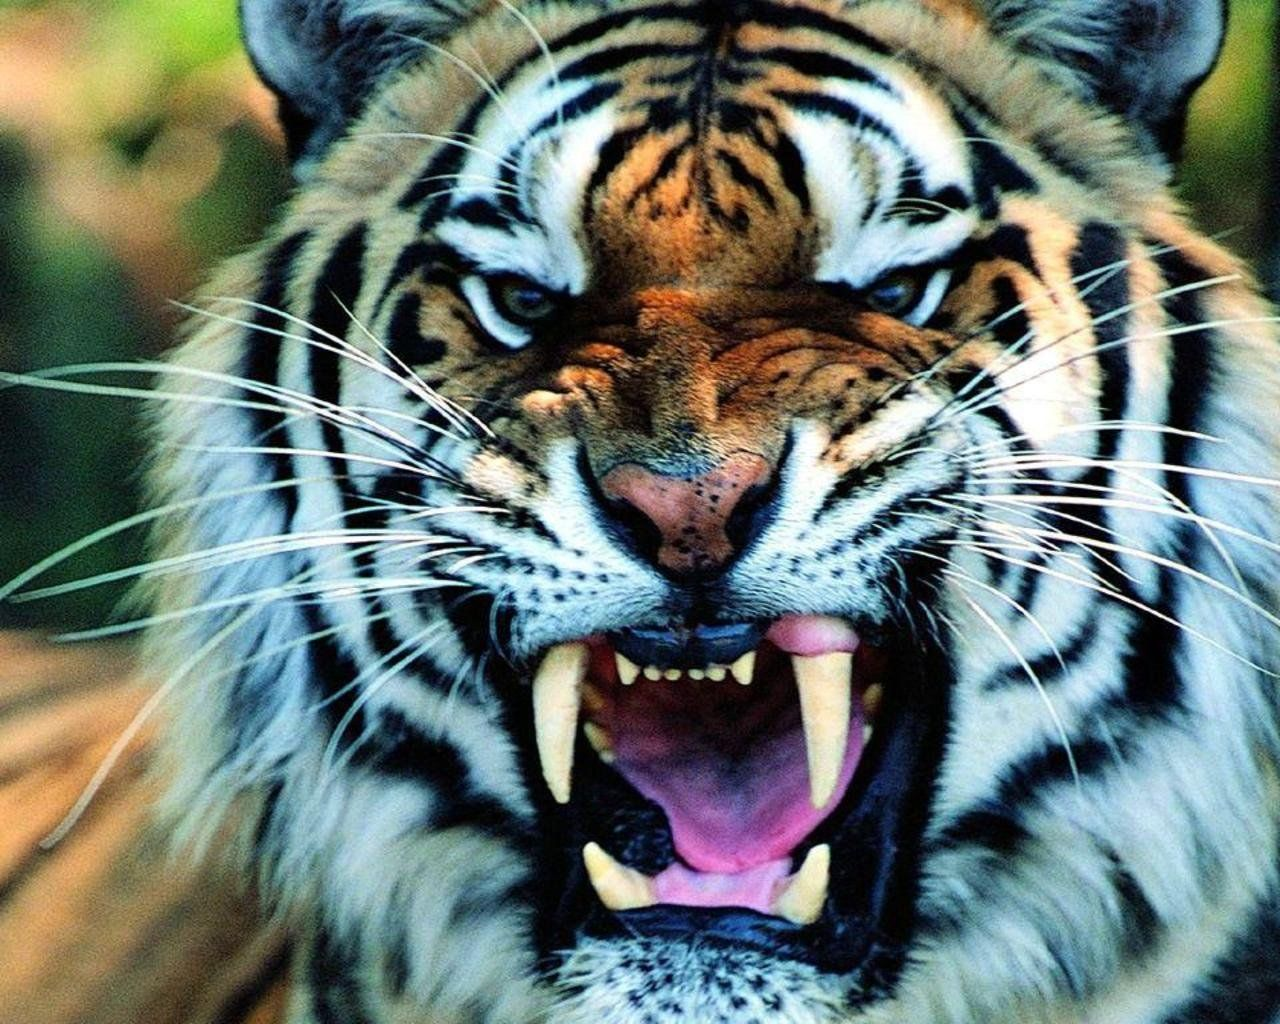 Angry Tiger Hd Wallpapers 100 Quality Hd Desktop Wallpapers High Definition Hd Picture Free Download Angry Tiger Angry Wallpapers Tiger Wallpaper